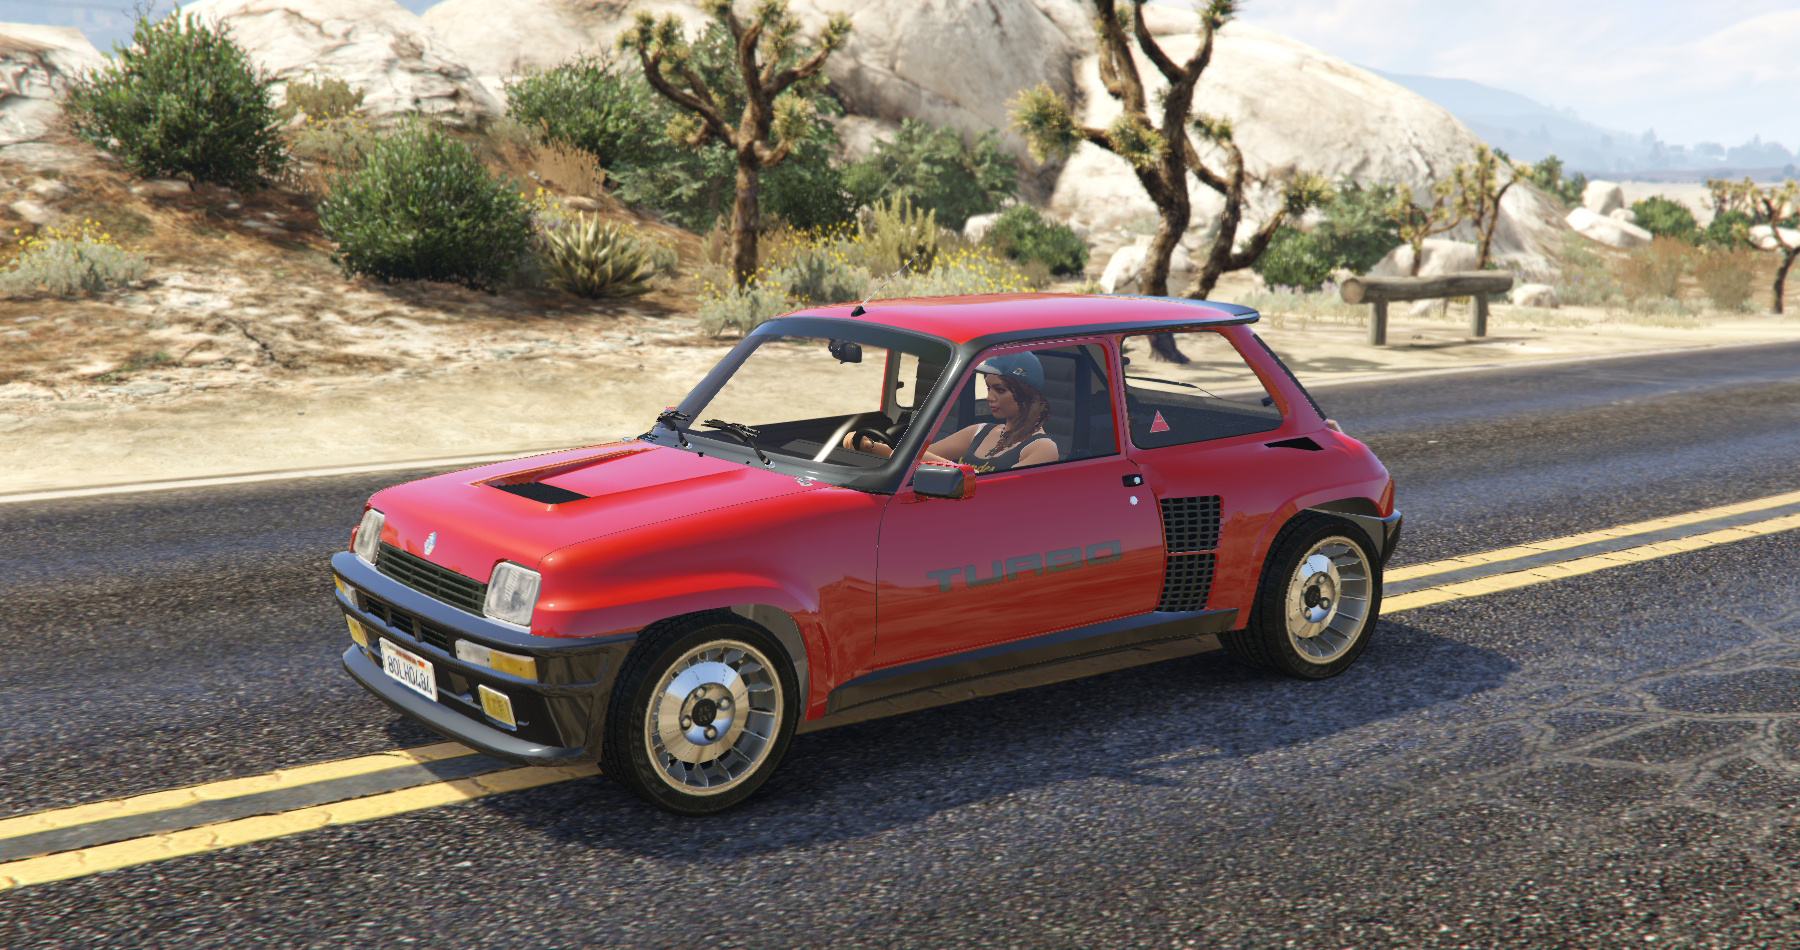 Renault 5 Turbo Add On Replace Tuning Livery Gta5 Mods Com